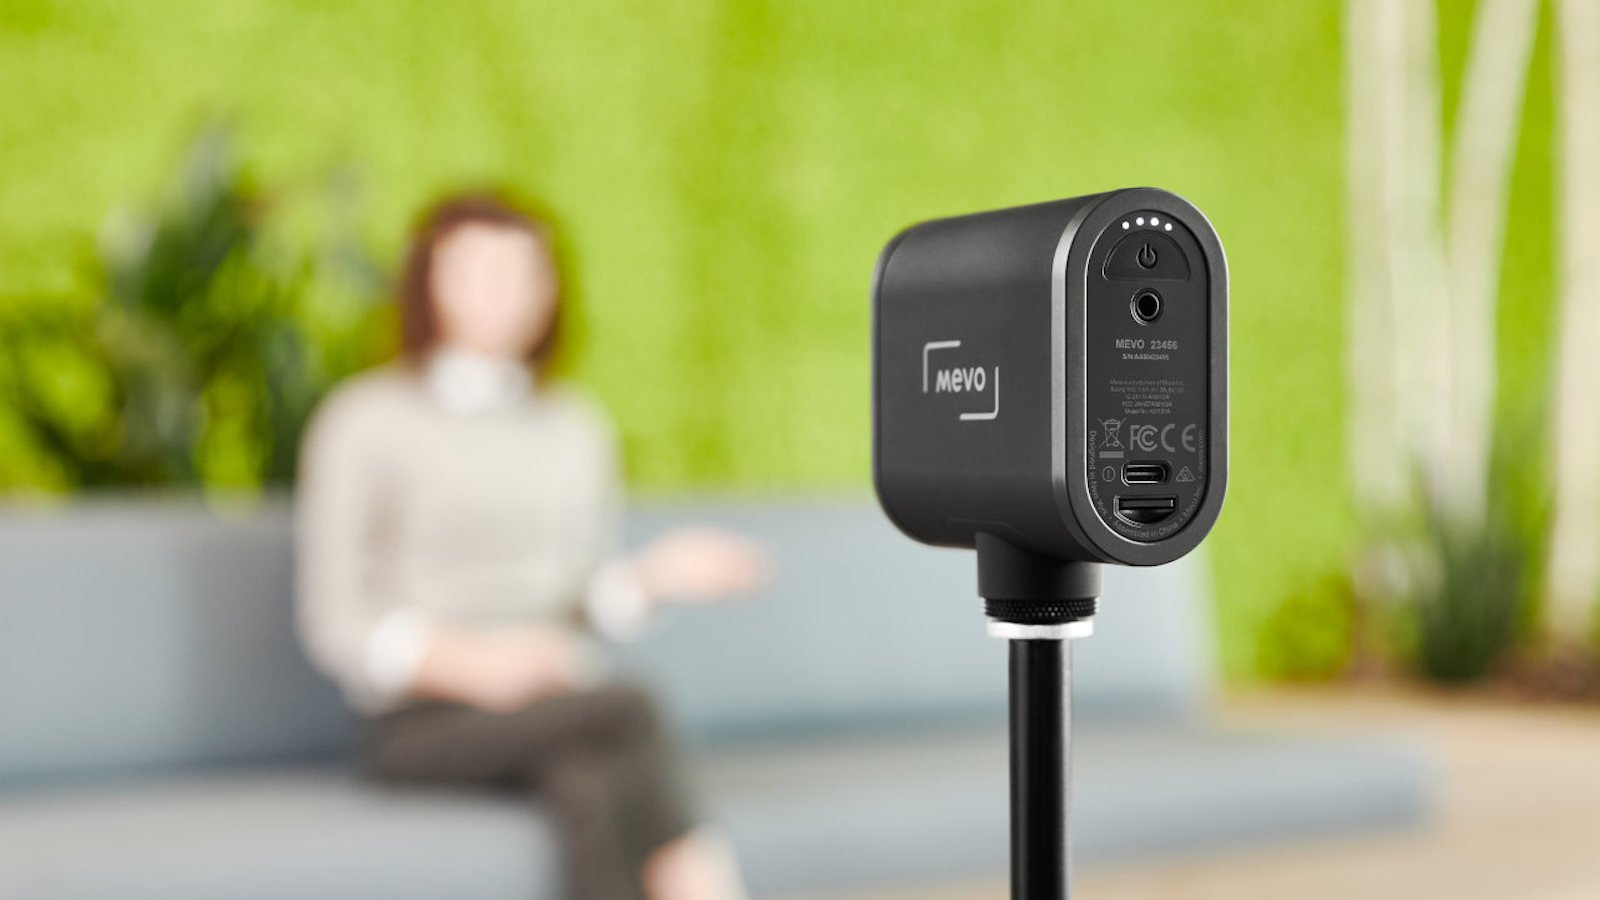 Mevo Start pocket livestreaming camera makes it easy to edit your content with its app